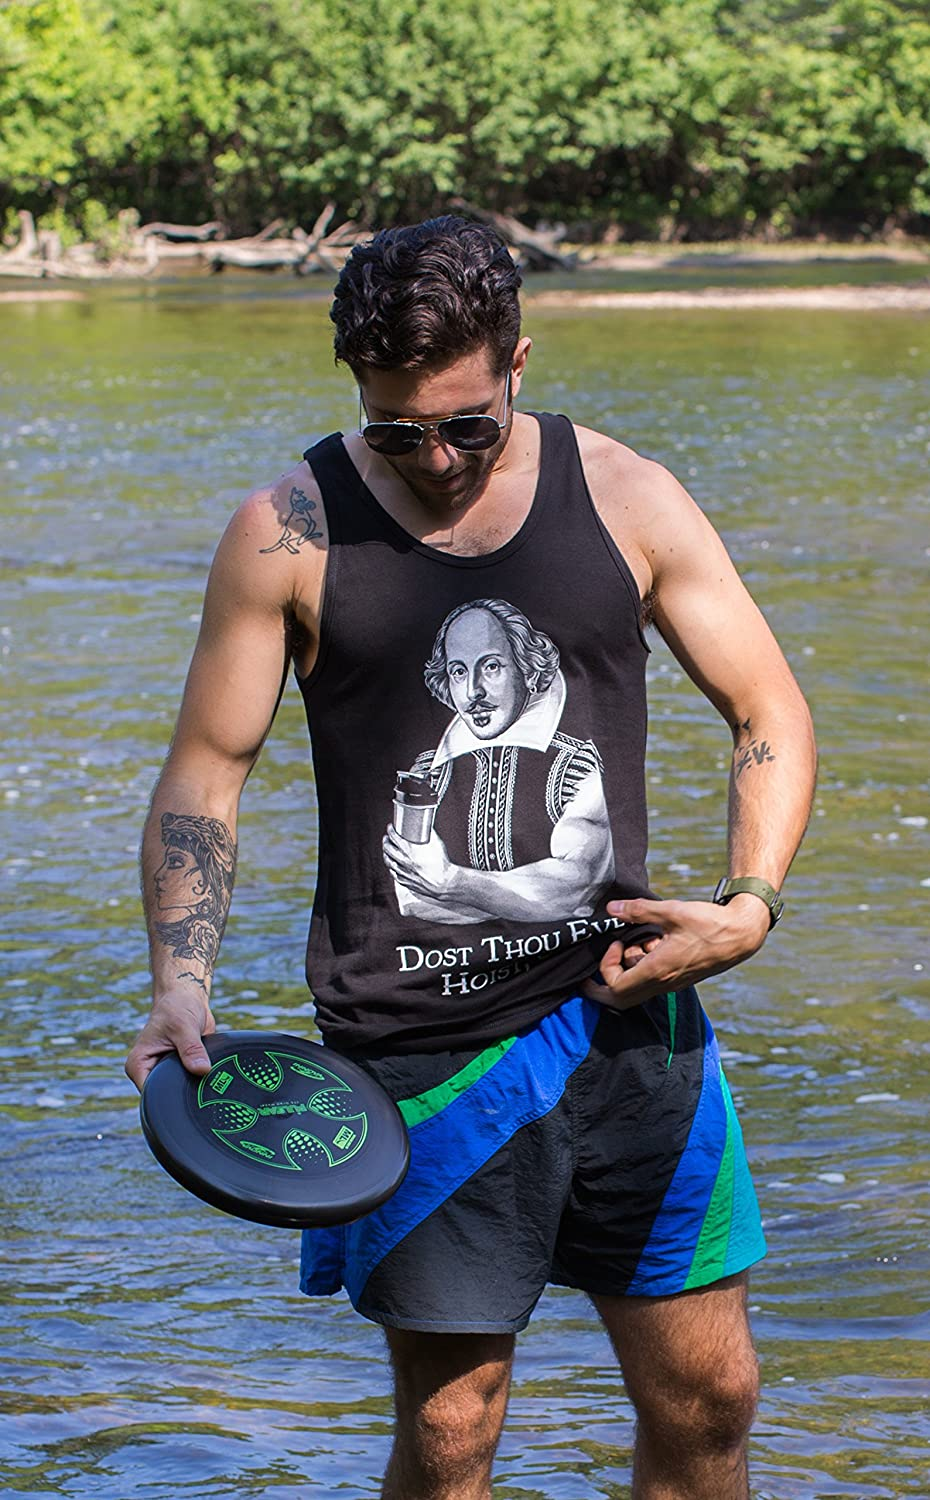 Funny Workout Weight Lifting Shakespeare Gym Tank Top Black 0-fba/_doththou2-tank Dost Thou Even Hoist Sir